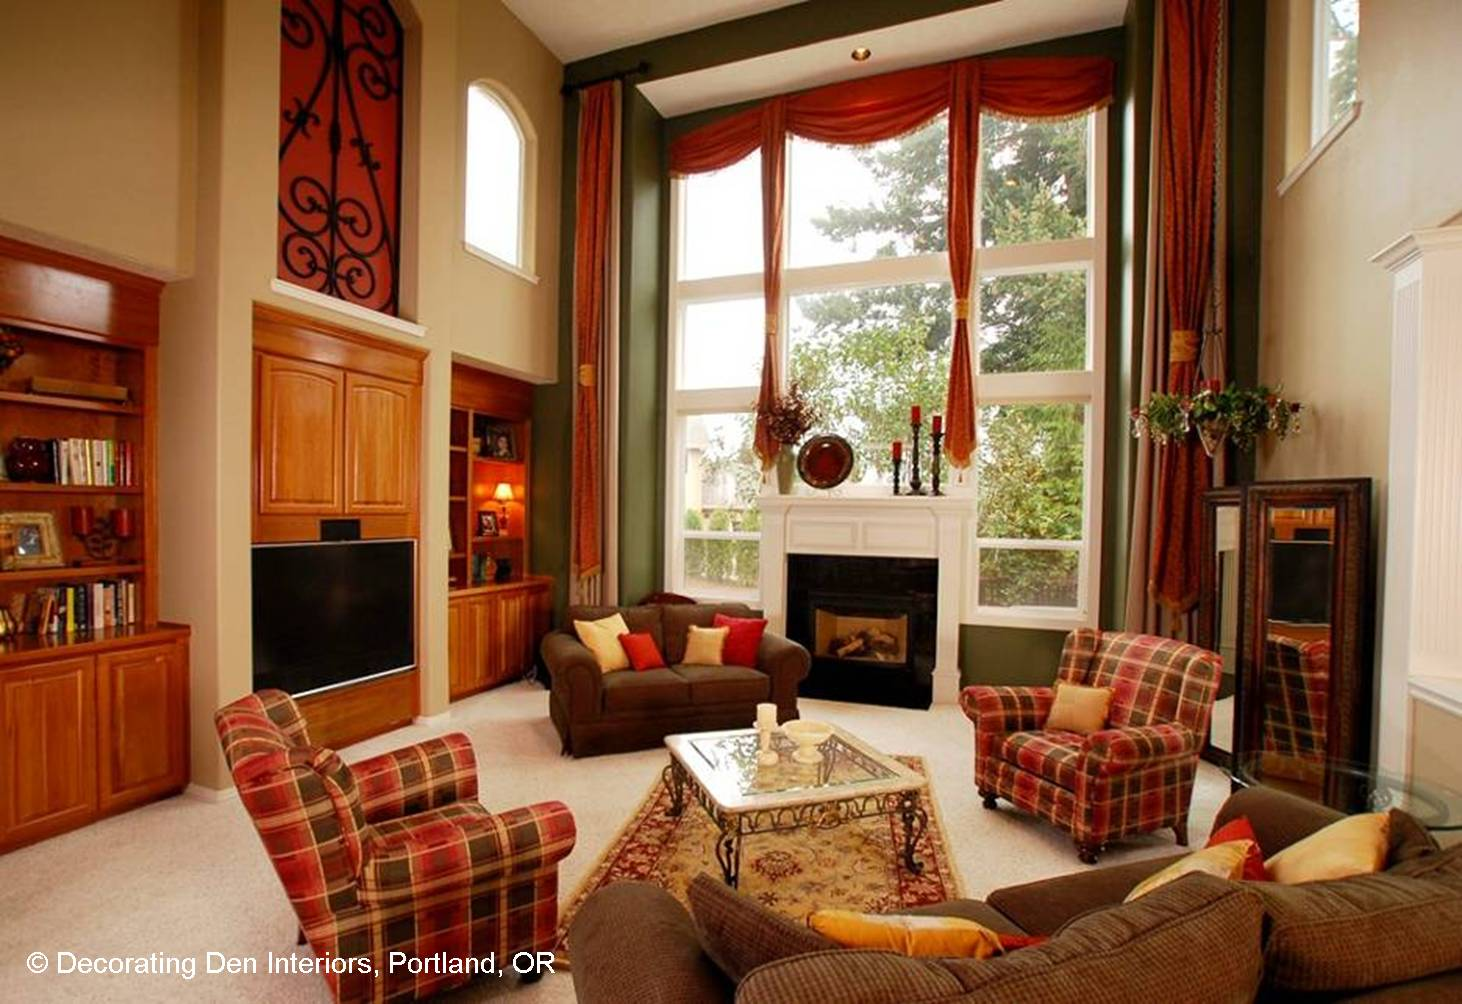 Focus on the Fireplace  Devine Decorating Results for Your Interior